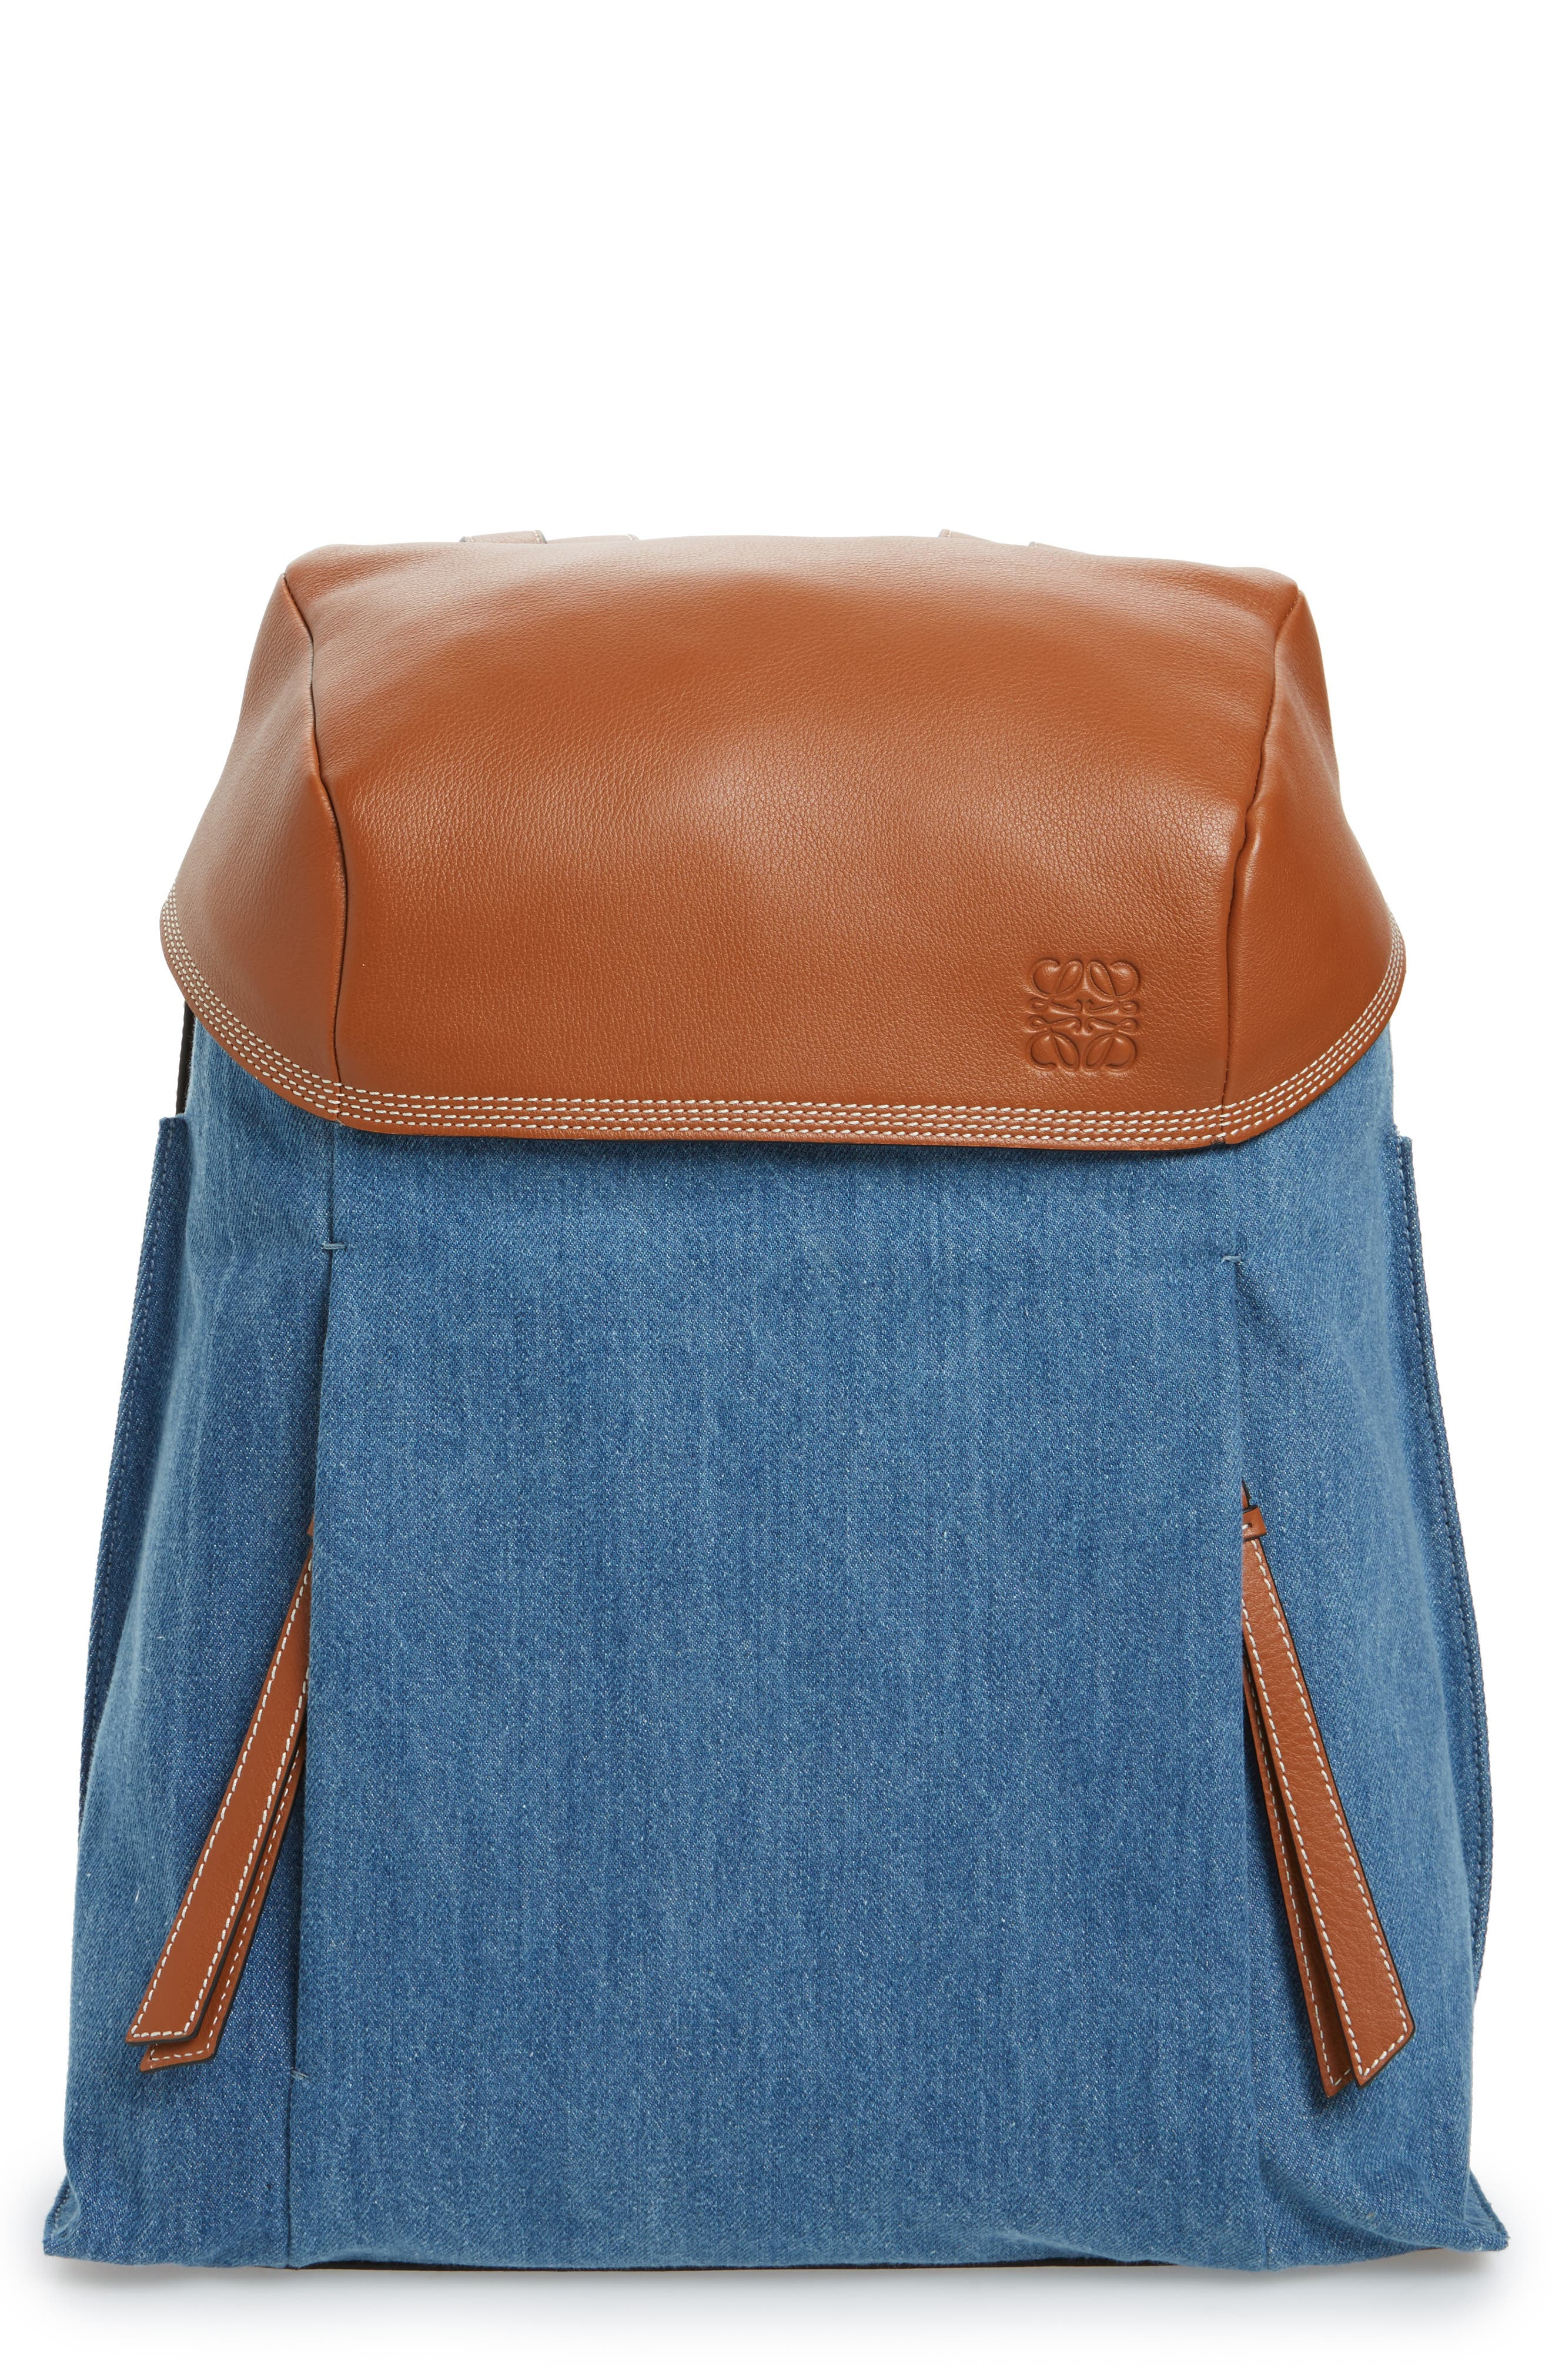 Main Image - Loewe T Small Denim & Leather Backpack